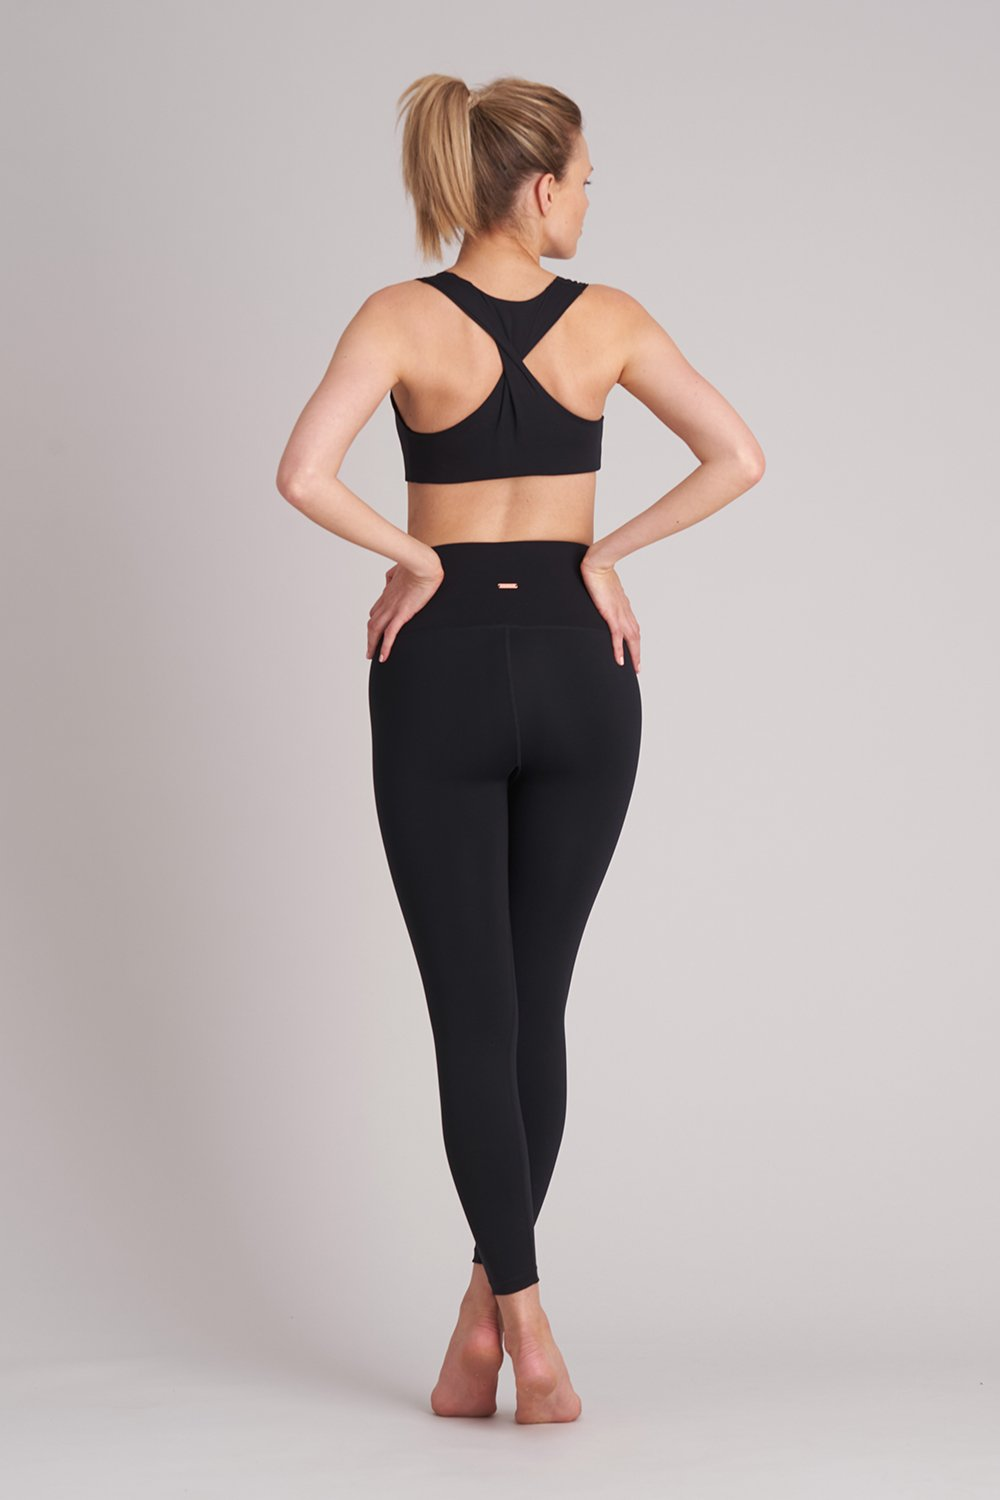 Zise Gigi Twist Back Crop Top - BLOCH US